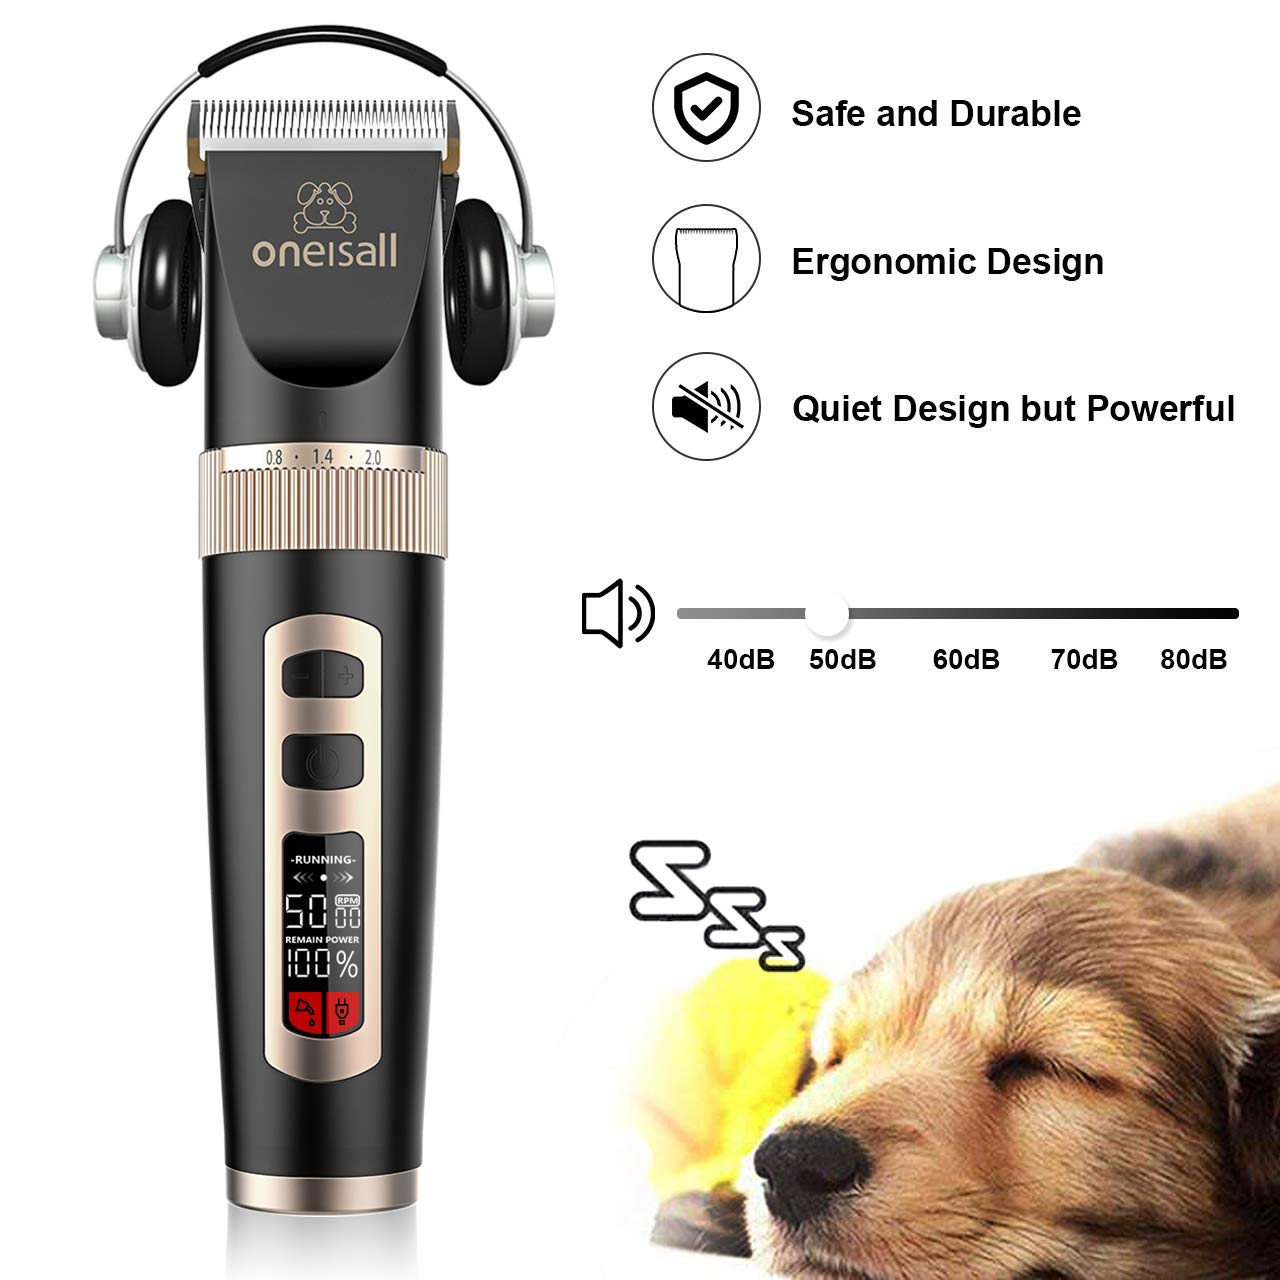 oneisall Dog Clippers Professional, 3-Speed Quiet Rechargeable Cordless Pet Grooming Hair Clippers Set for Small and Large Dogs Cats-Black by oneisall (Image #4)